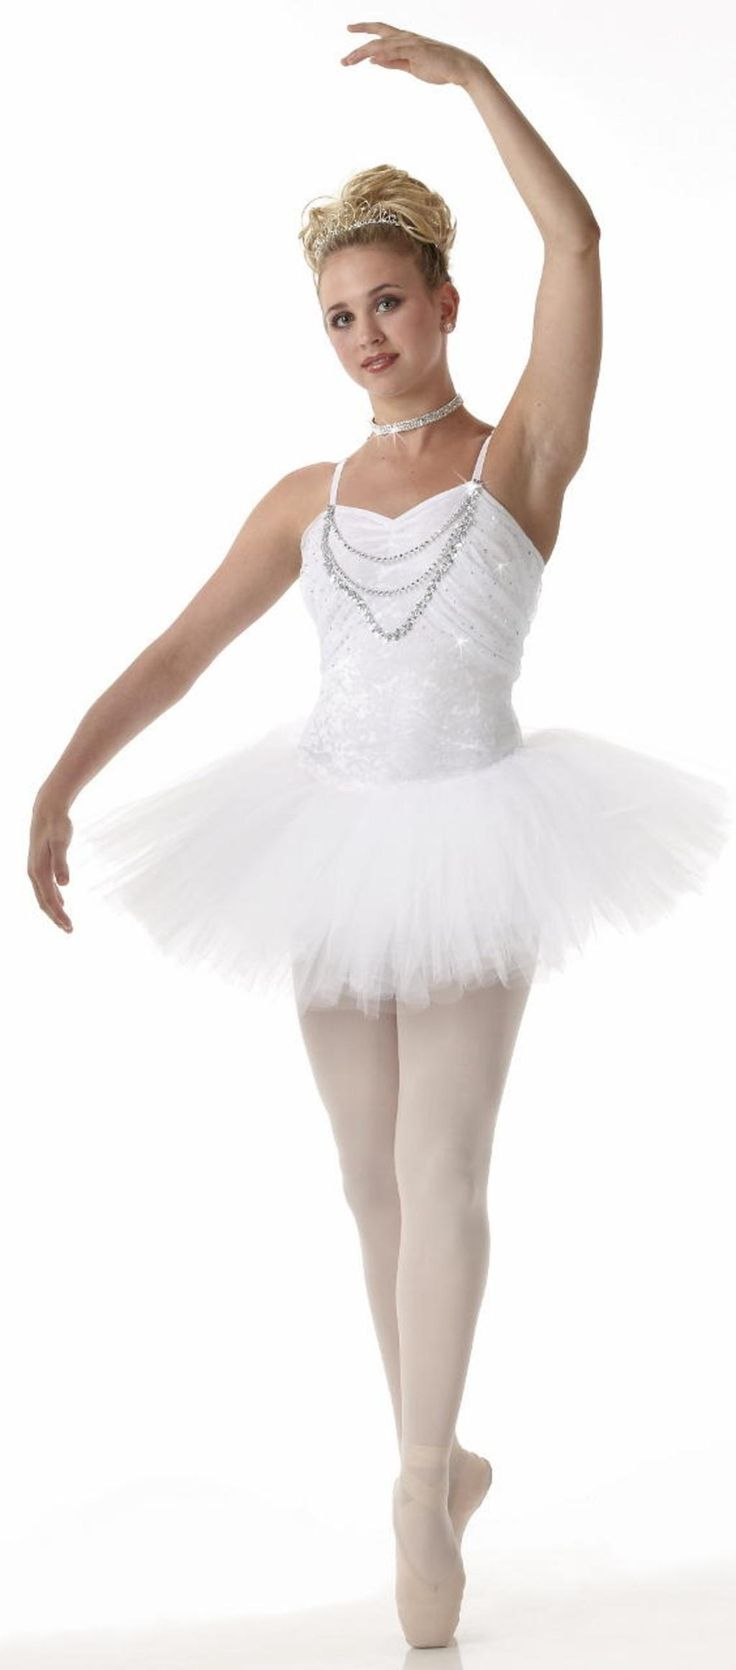 Details about SOME ENCHANTED EVENING Christmas Ballet Tutu ... - photo#32